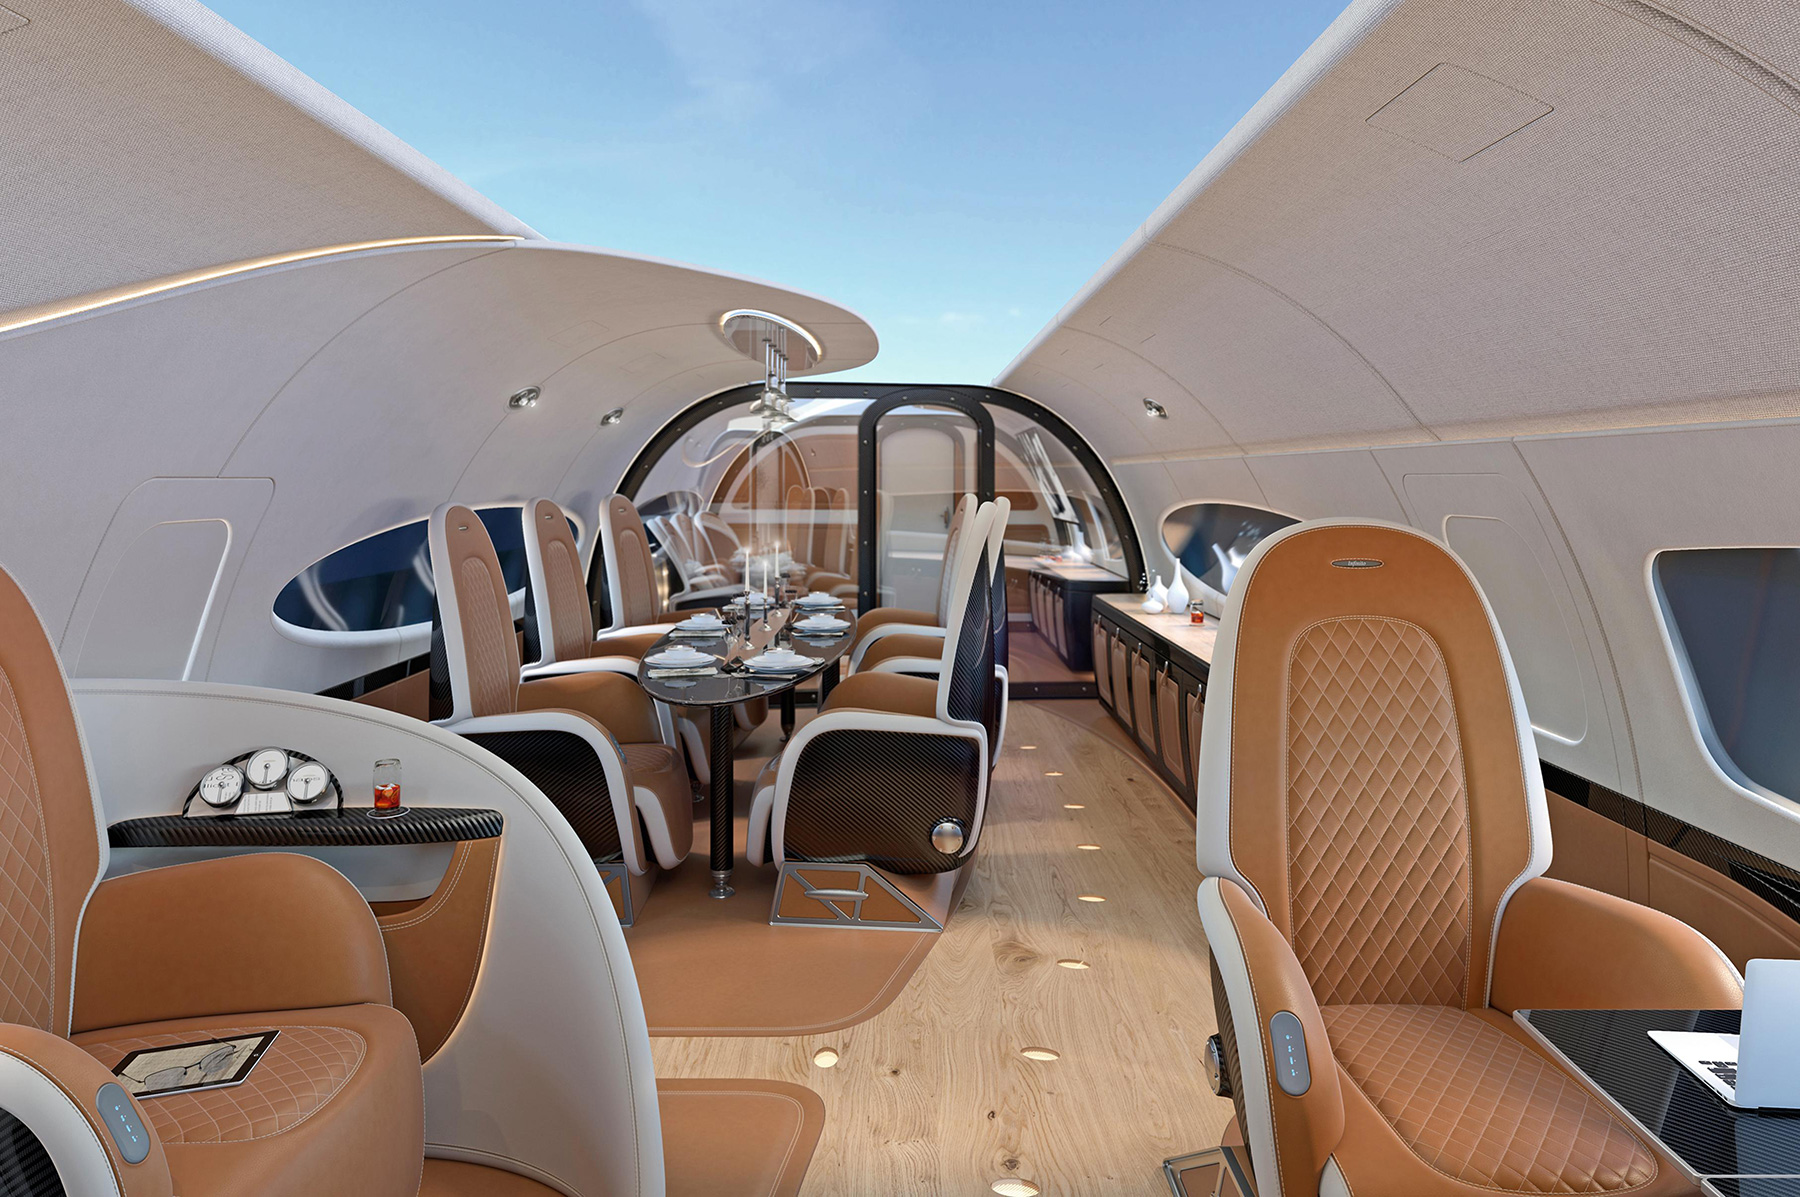 This Billionaire Business Jet Has Its Own Sunroof